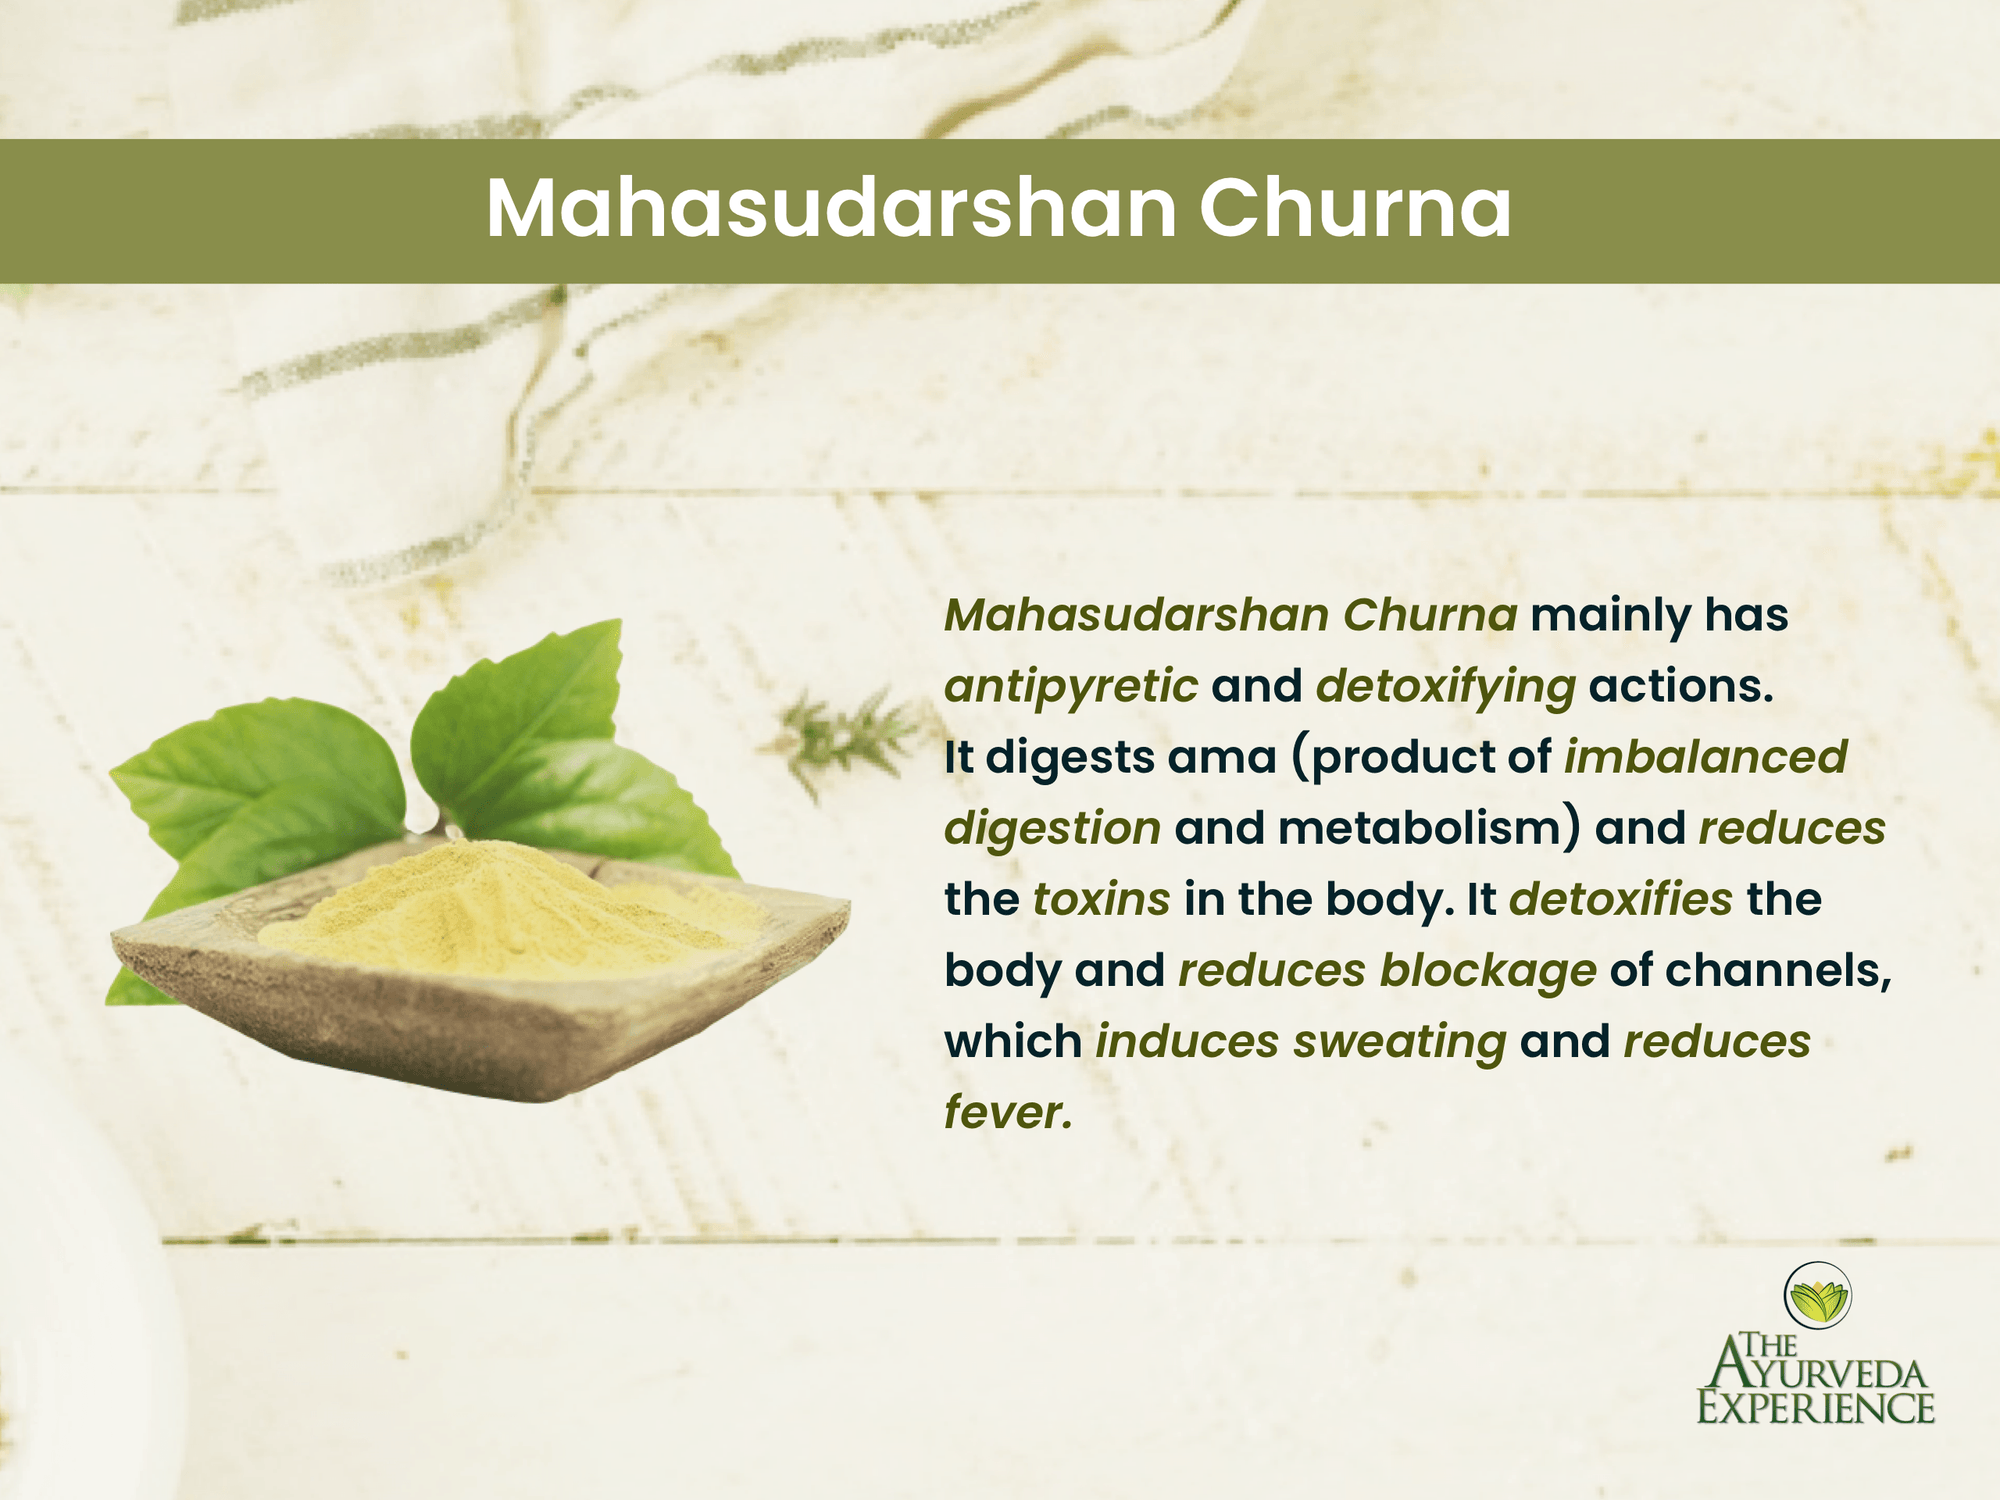 Manage all types of fevers with Mahasudarshana Churna